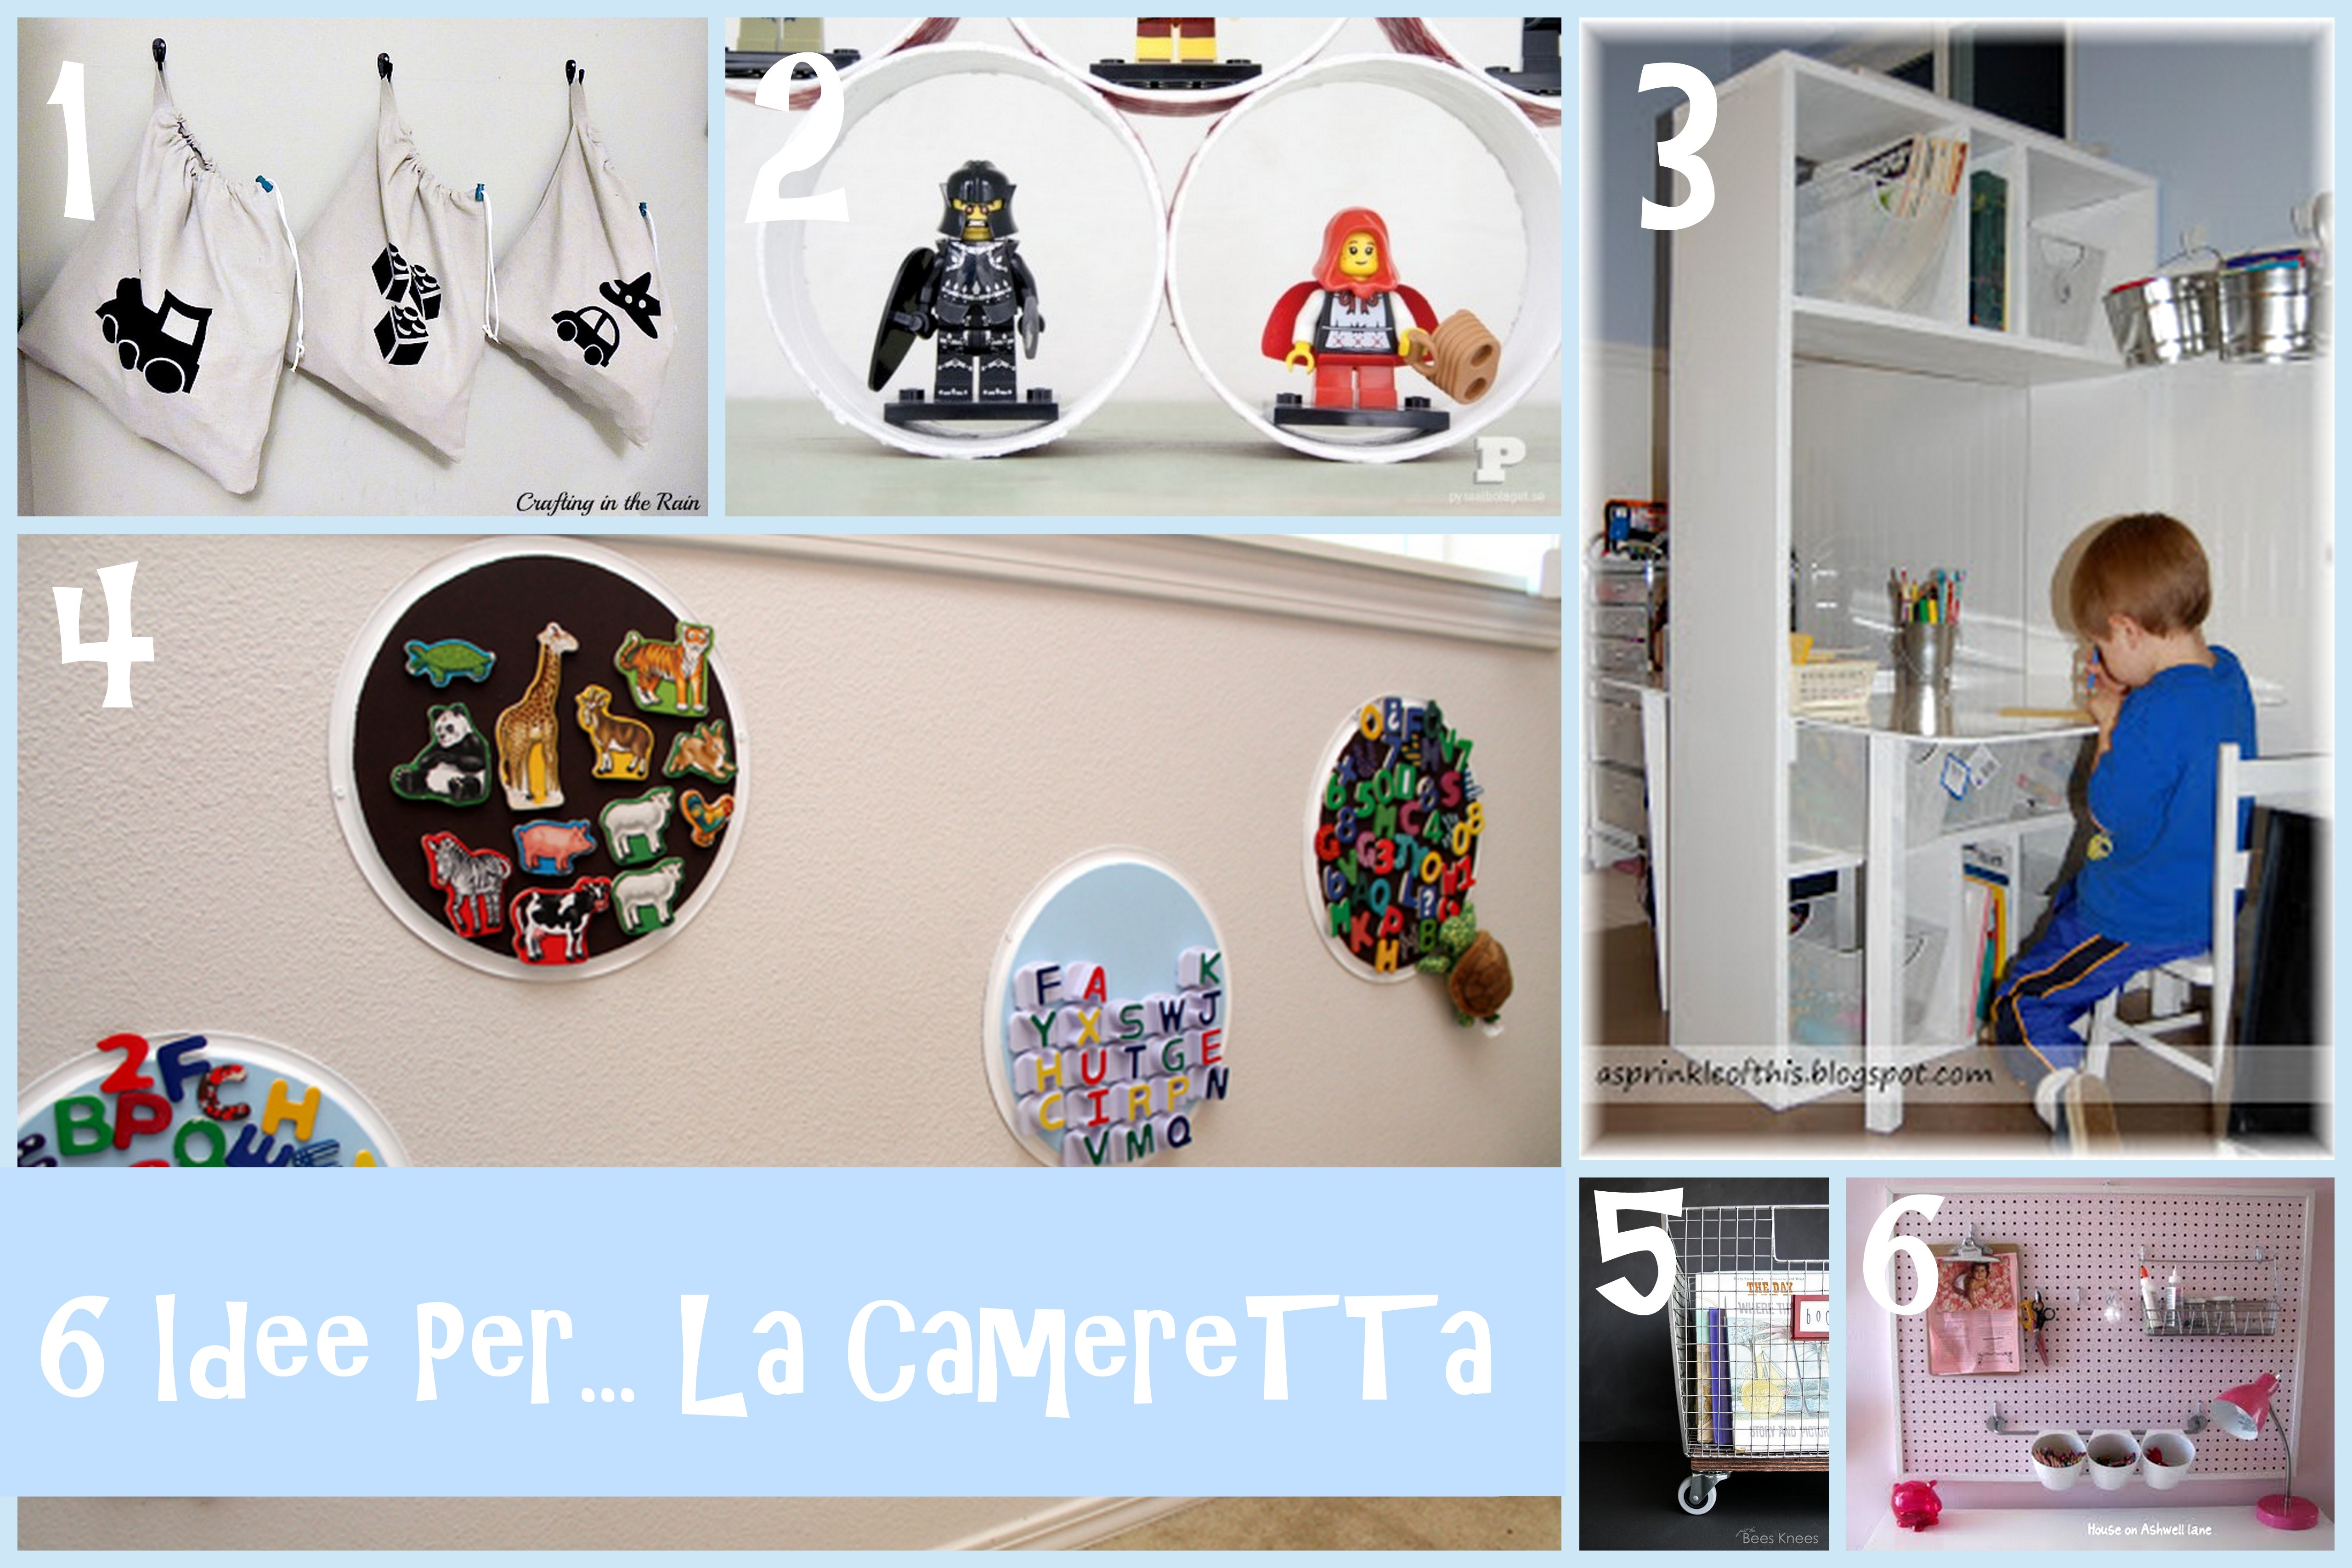 Idee per la camera dei bambini design casa creativa e for Idee per la camera